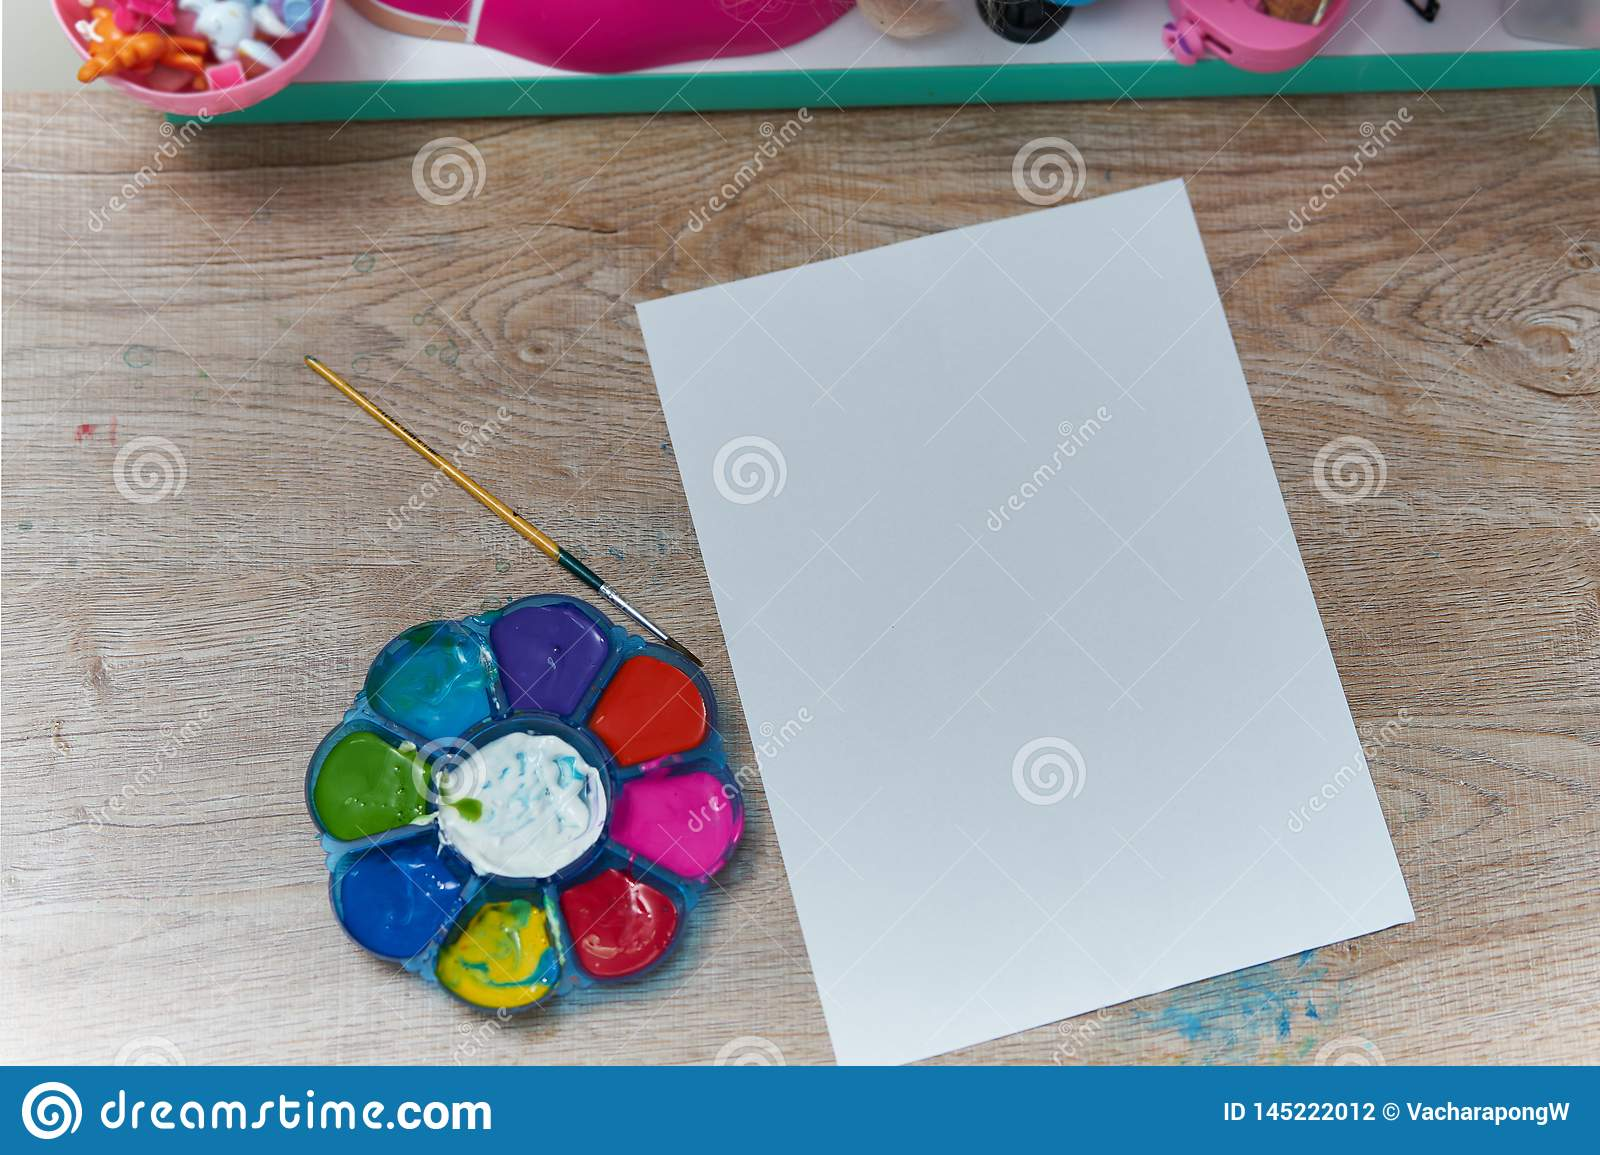 4 743 Art Stuff Photos Free Royalty Free Stock Photos From Dreamstime